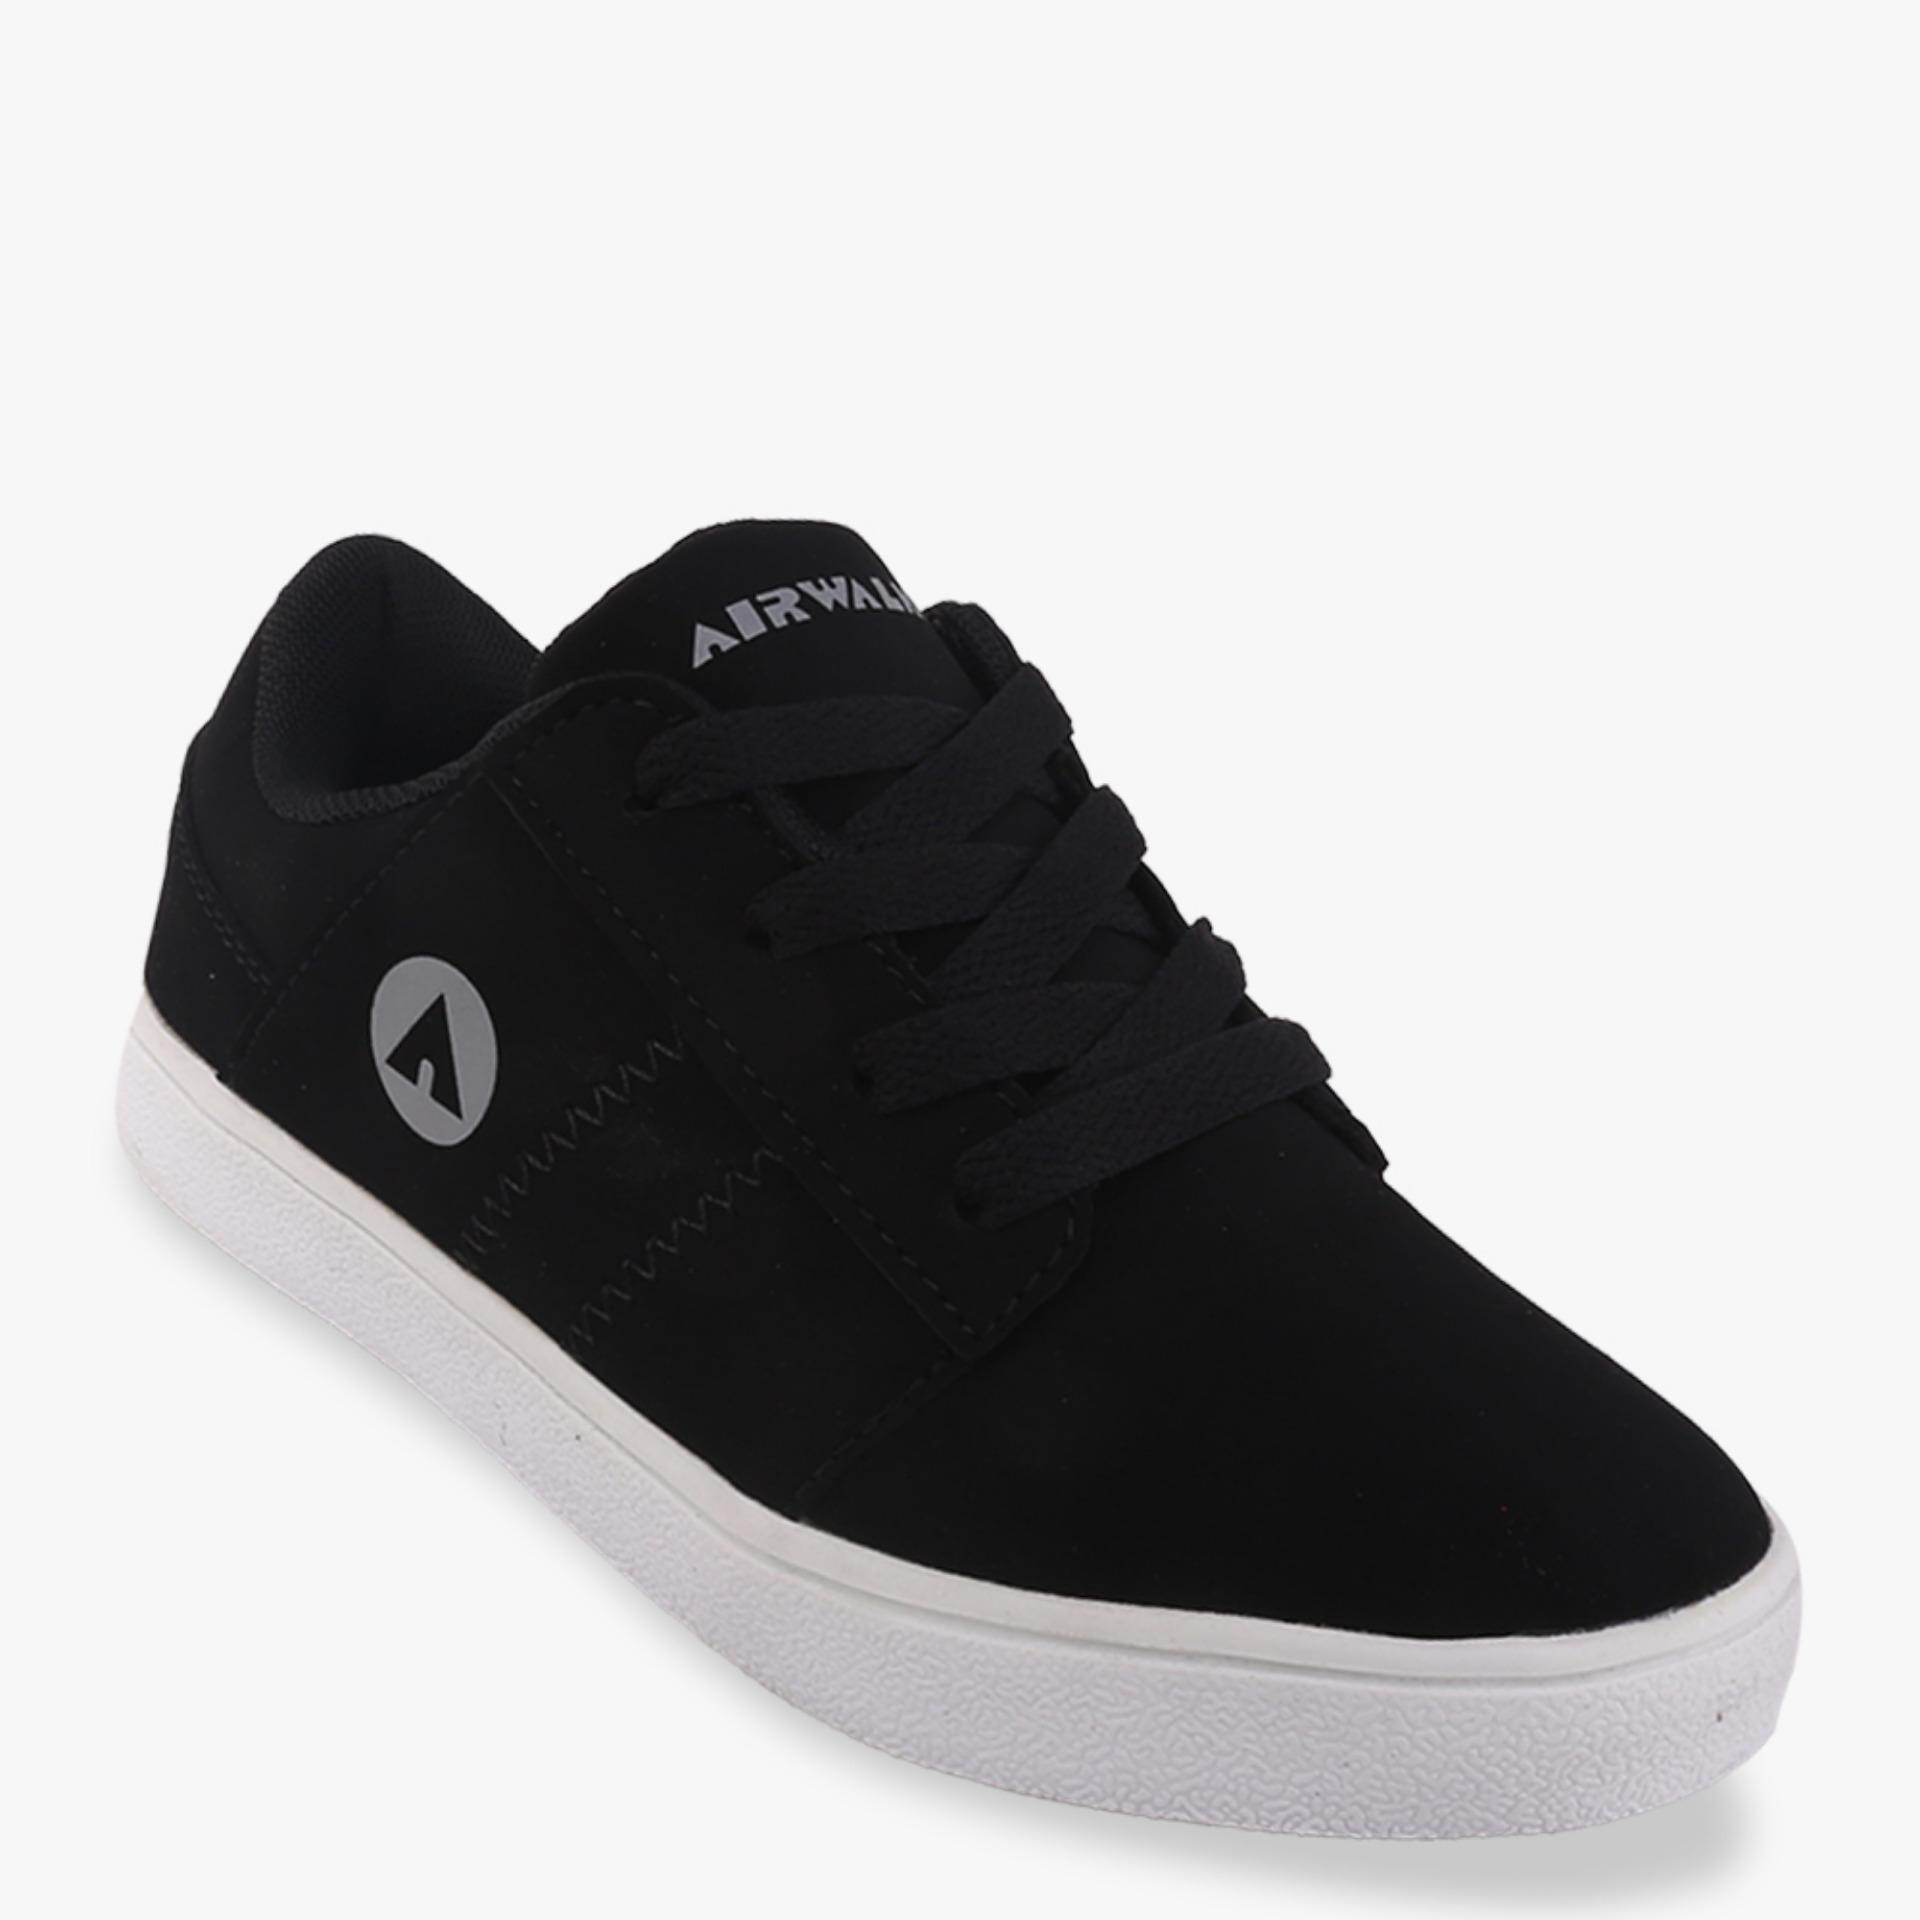 Diskon Airwalk Jordan Boys Sneakers Shoes Hitam Airwalk Di Indonesia